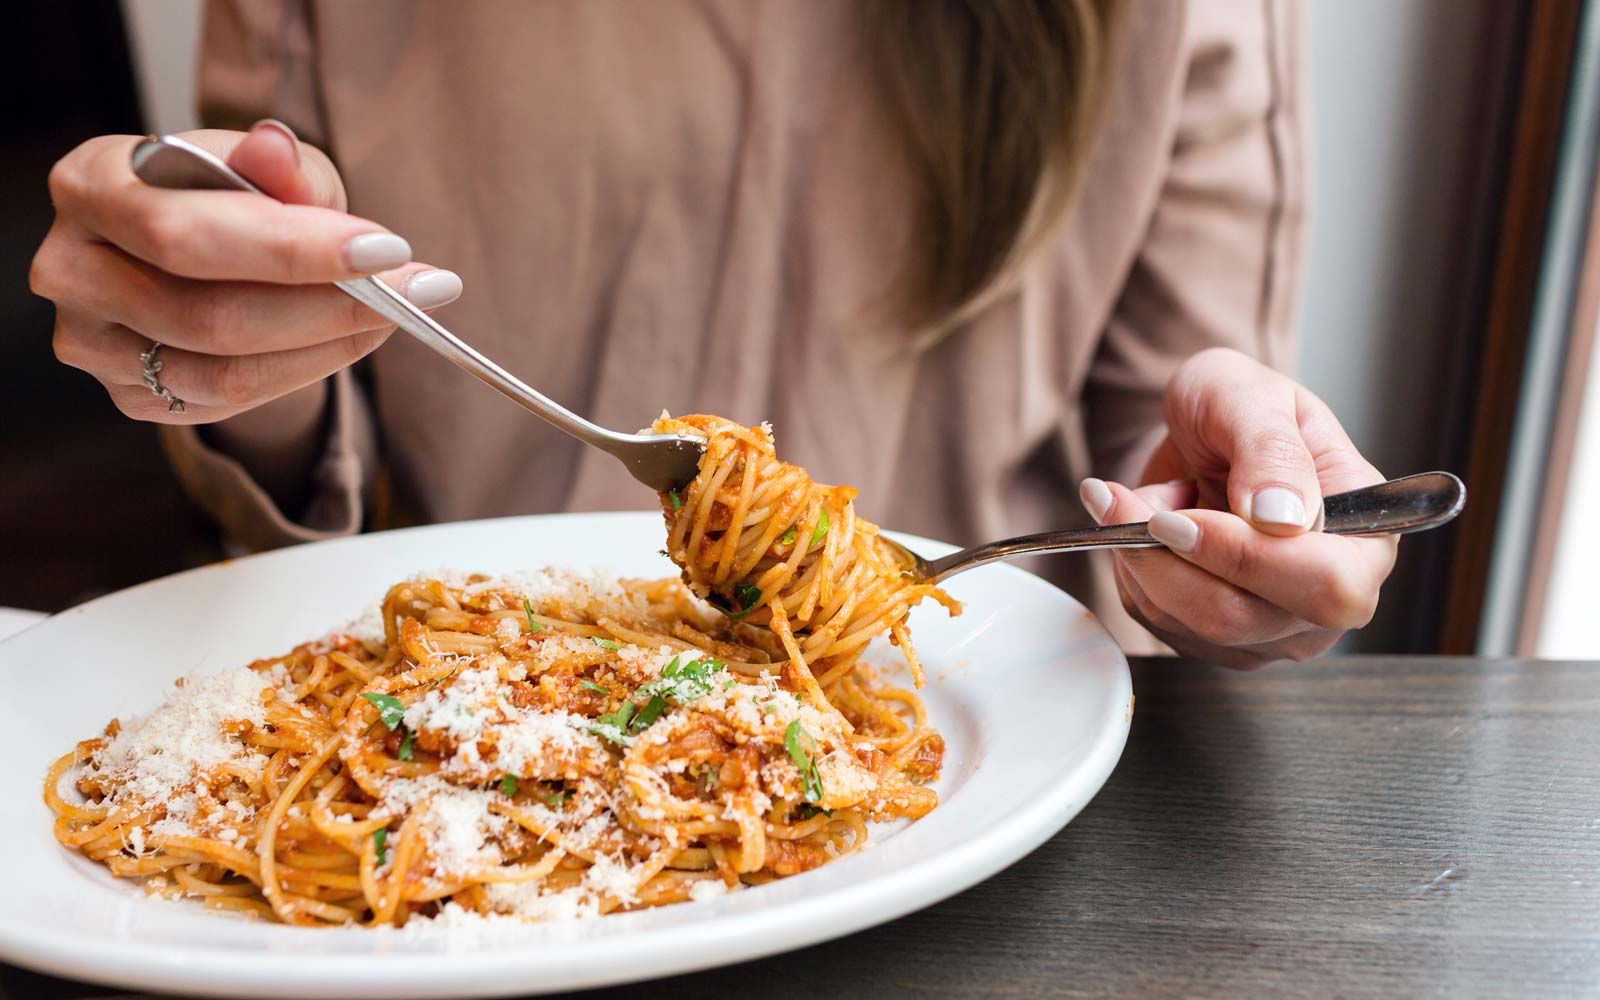 Cutting Carbs Could Actually Shorten Your Life